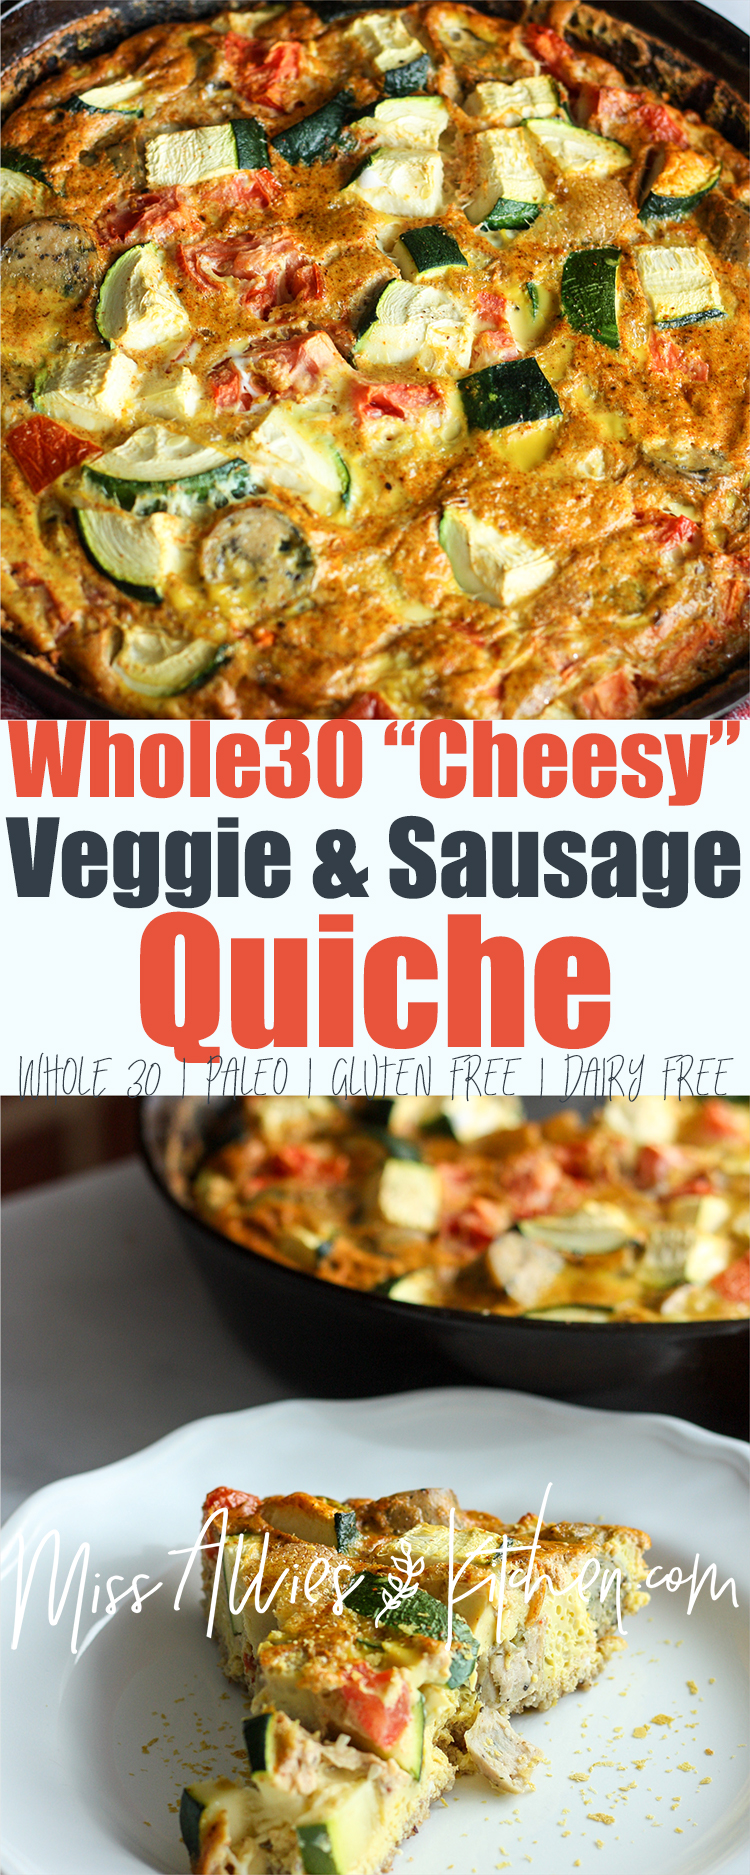 "Whole30 ""Cheesy"" Veggie & Sausage Quiche"